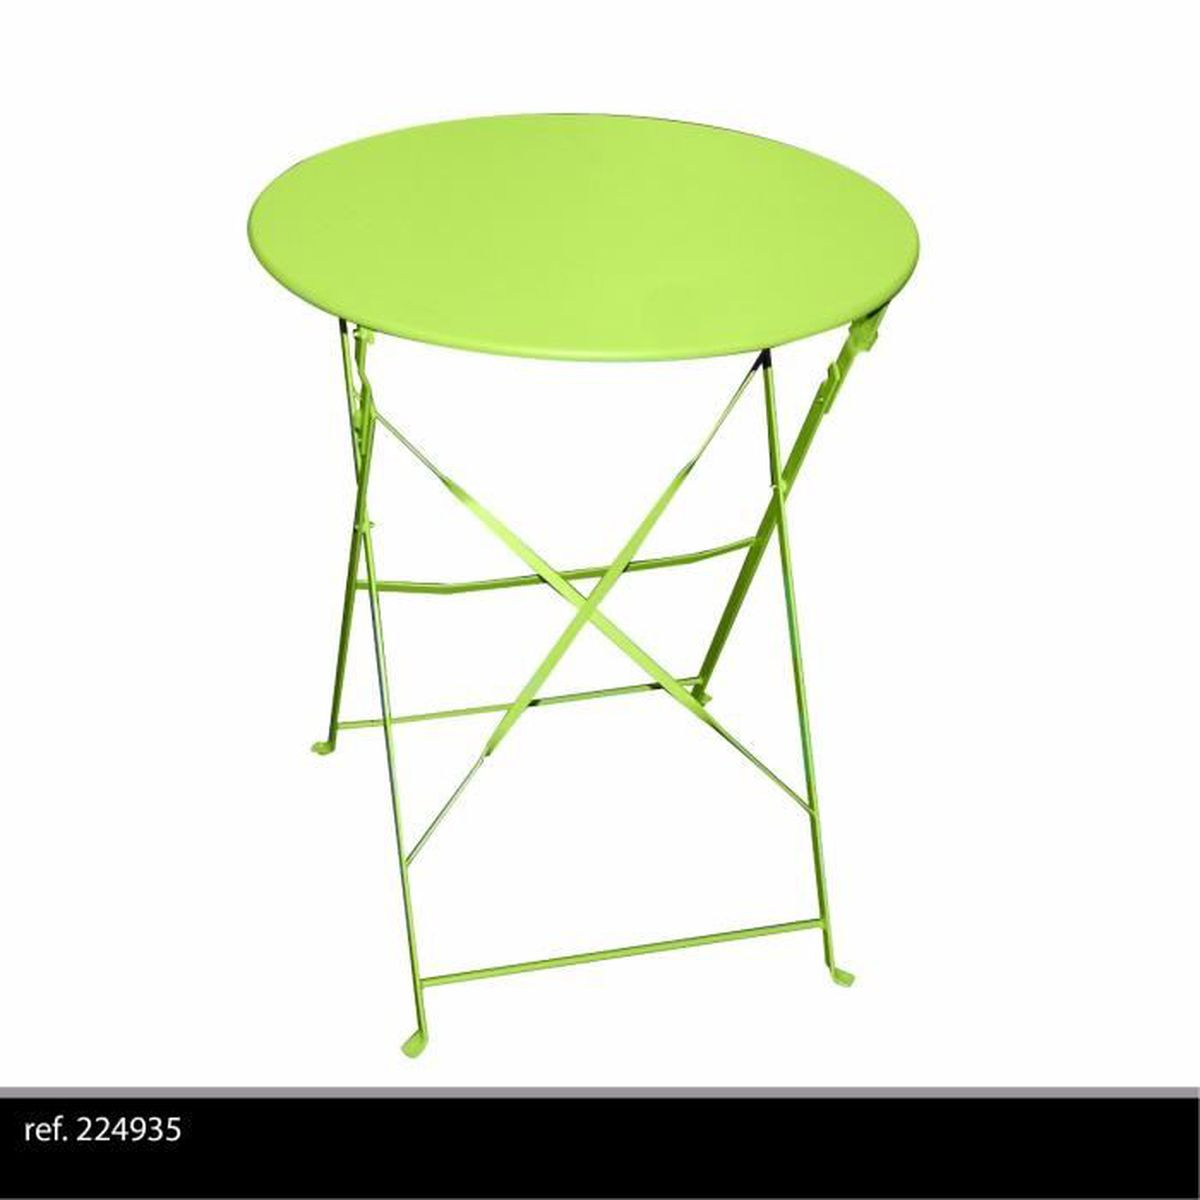 Table ronde de jardin en metal bistro cafe salon pliante - Salon de jardin table ronde ...